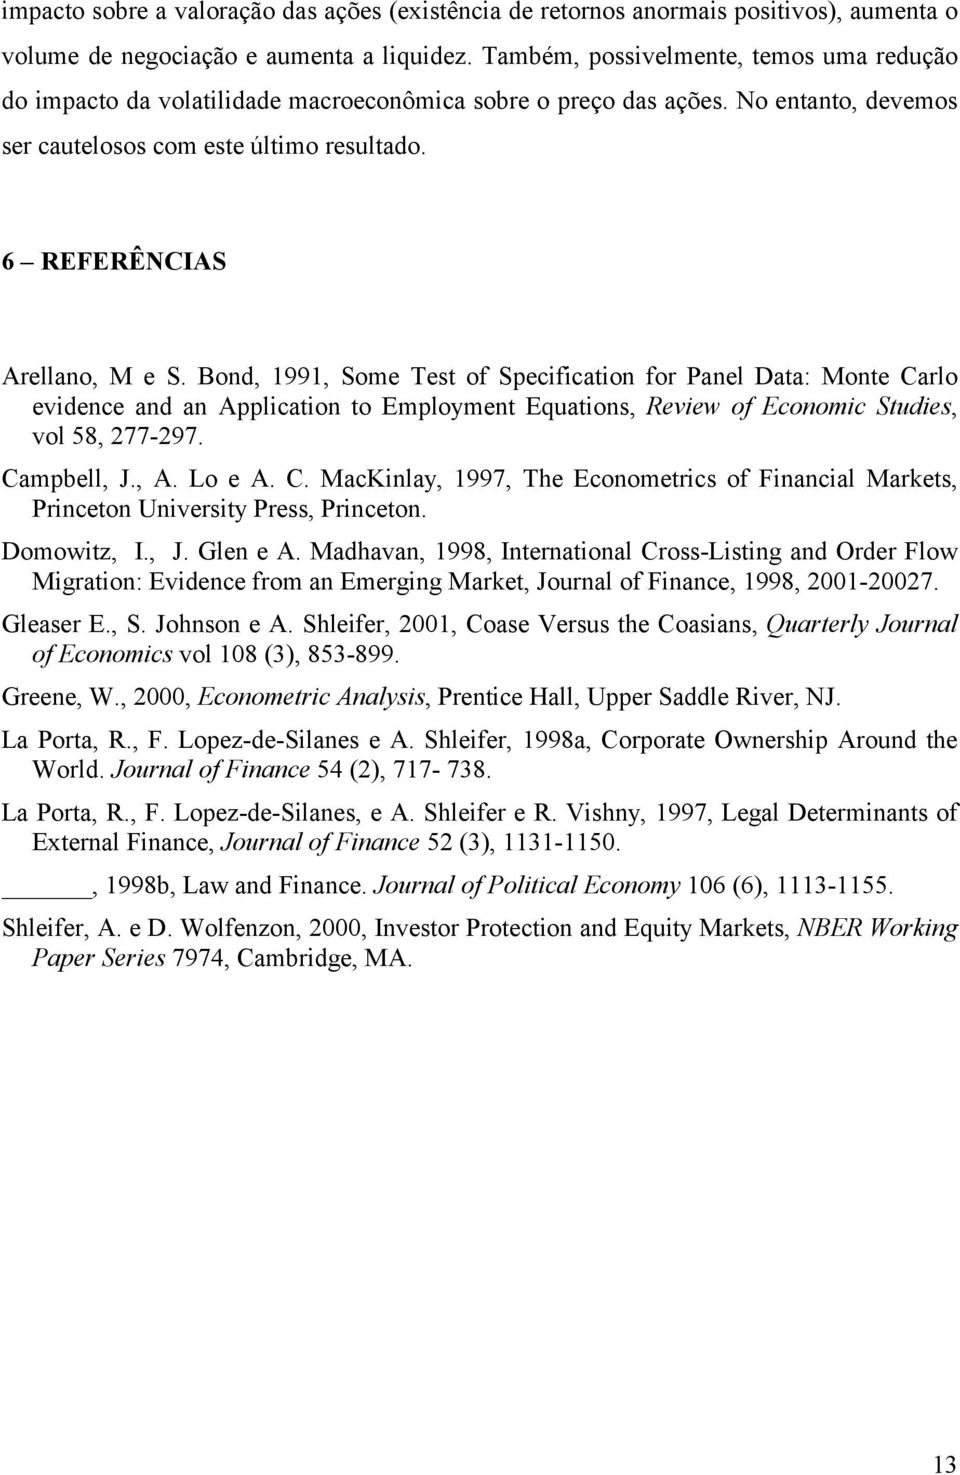 Bond, 99, Some Tes of Specfcaon for Panel Daa: Mone Carlo evdence and an Applcaon o Employmen Equaons, Revew of Economc Sudes, vol 58, 277-297. Campbell, J., A. Lo e A. C. MacKnlay, 997, The Economercs of Fnancal Markes, Prnceon Unversy Press, Prnceon.